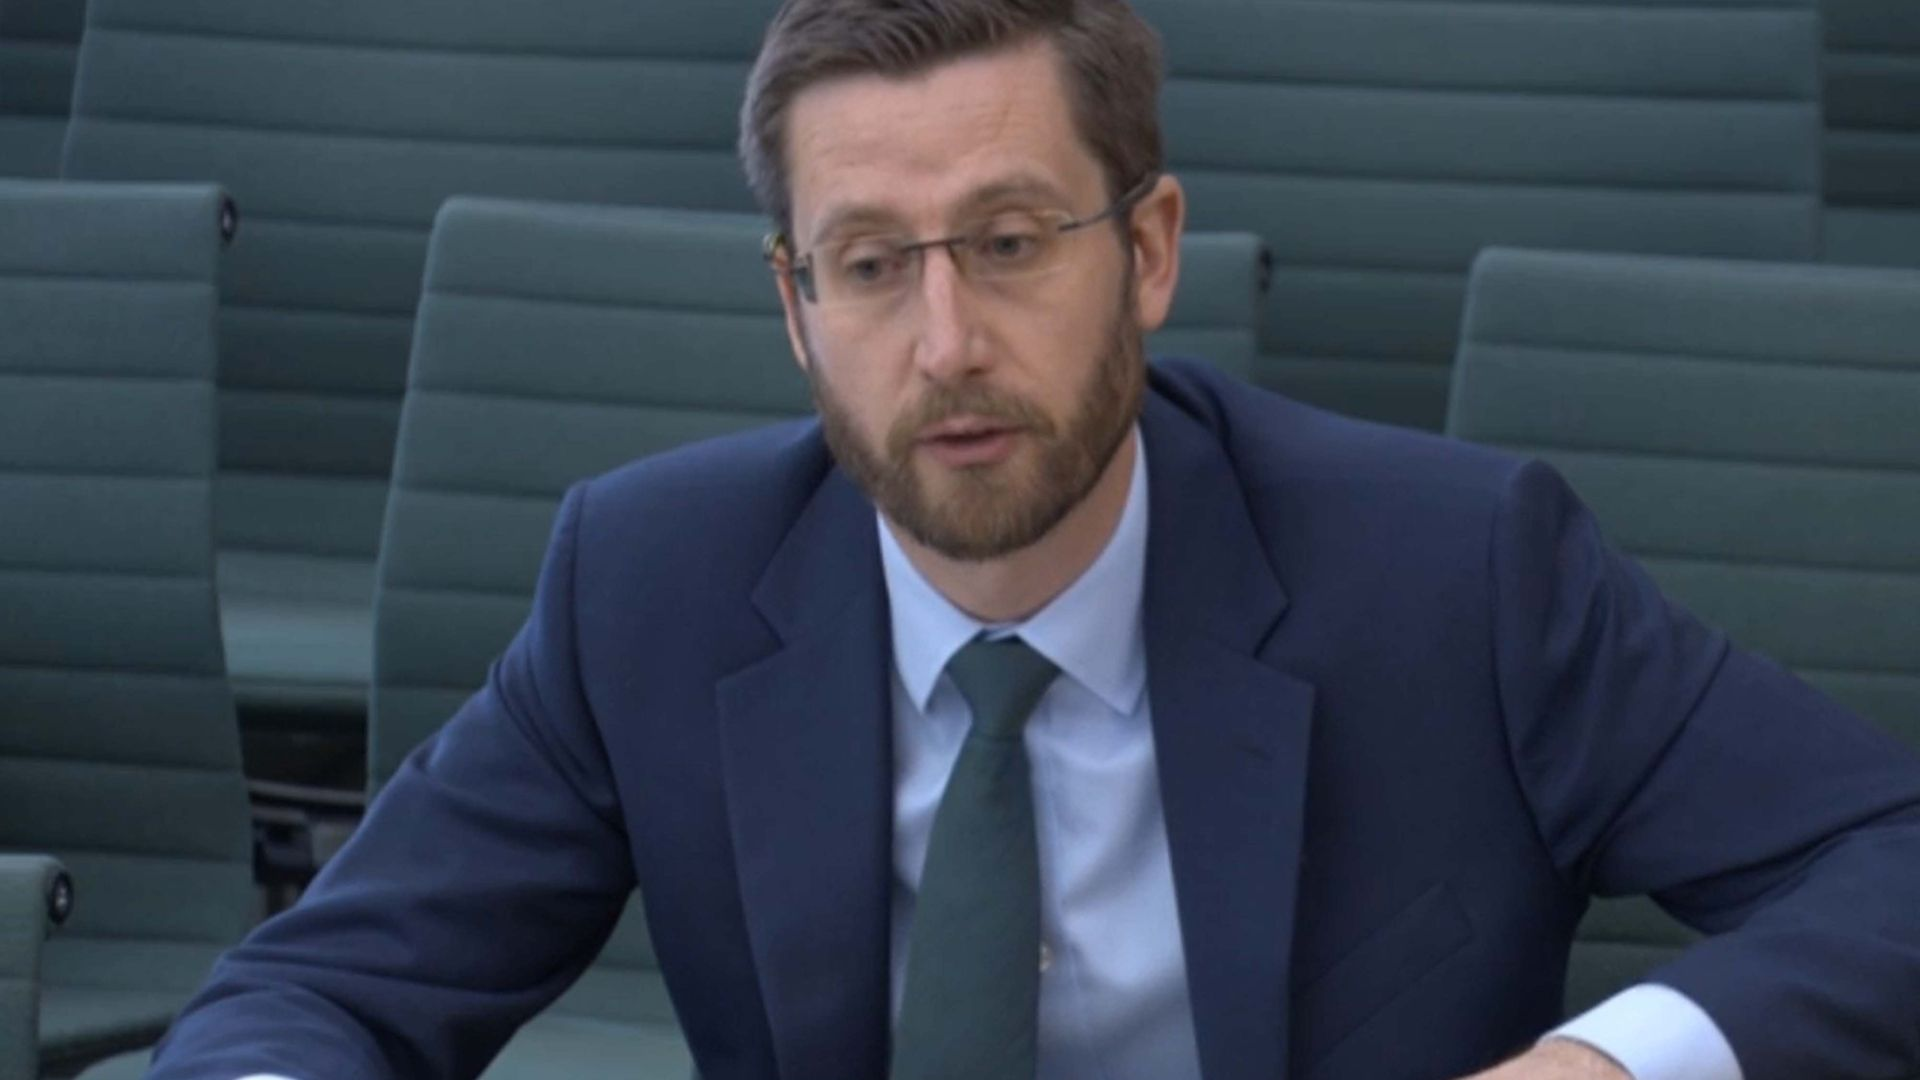 Simon Case, the cabinet secretary and the UK's most senior civil servant, giving evidence on the work of the Cabinet Office to the Commons Public Administration and Constitutional Affairs Committee (PACAC) - Credit: PA